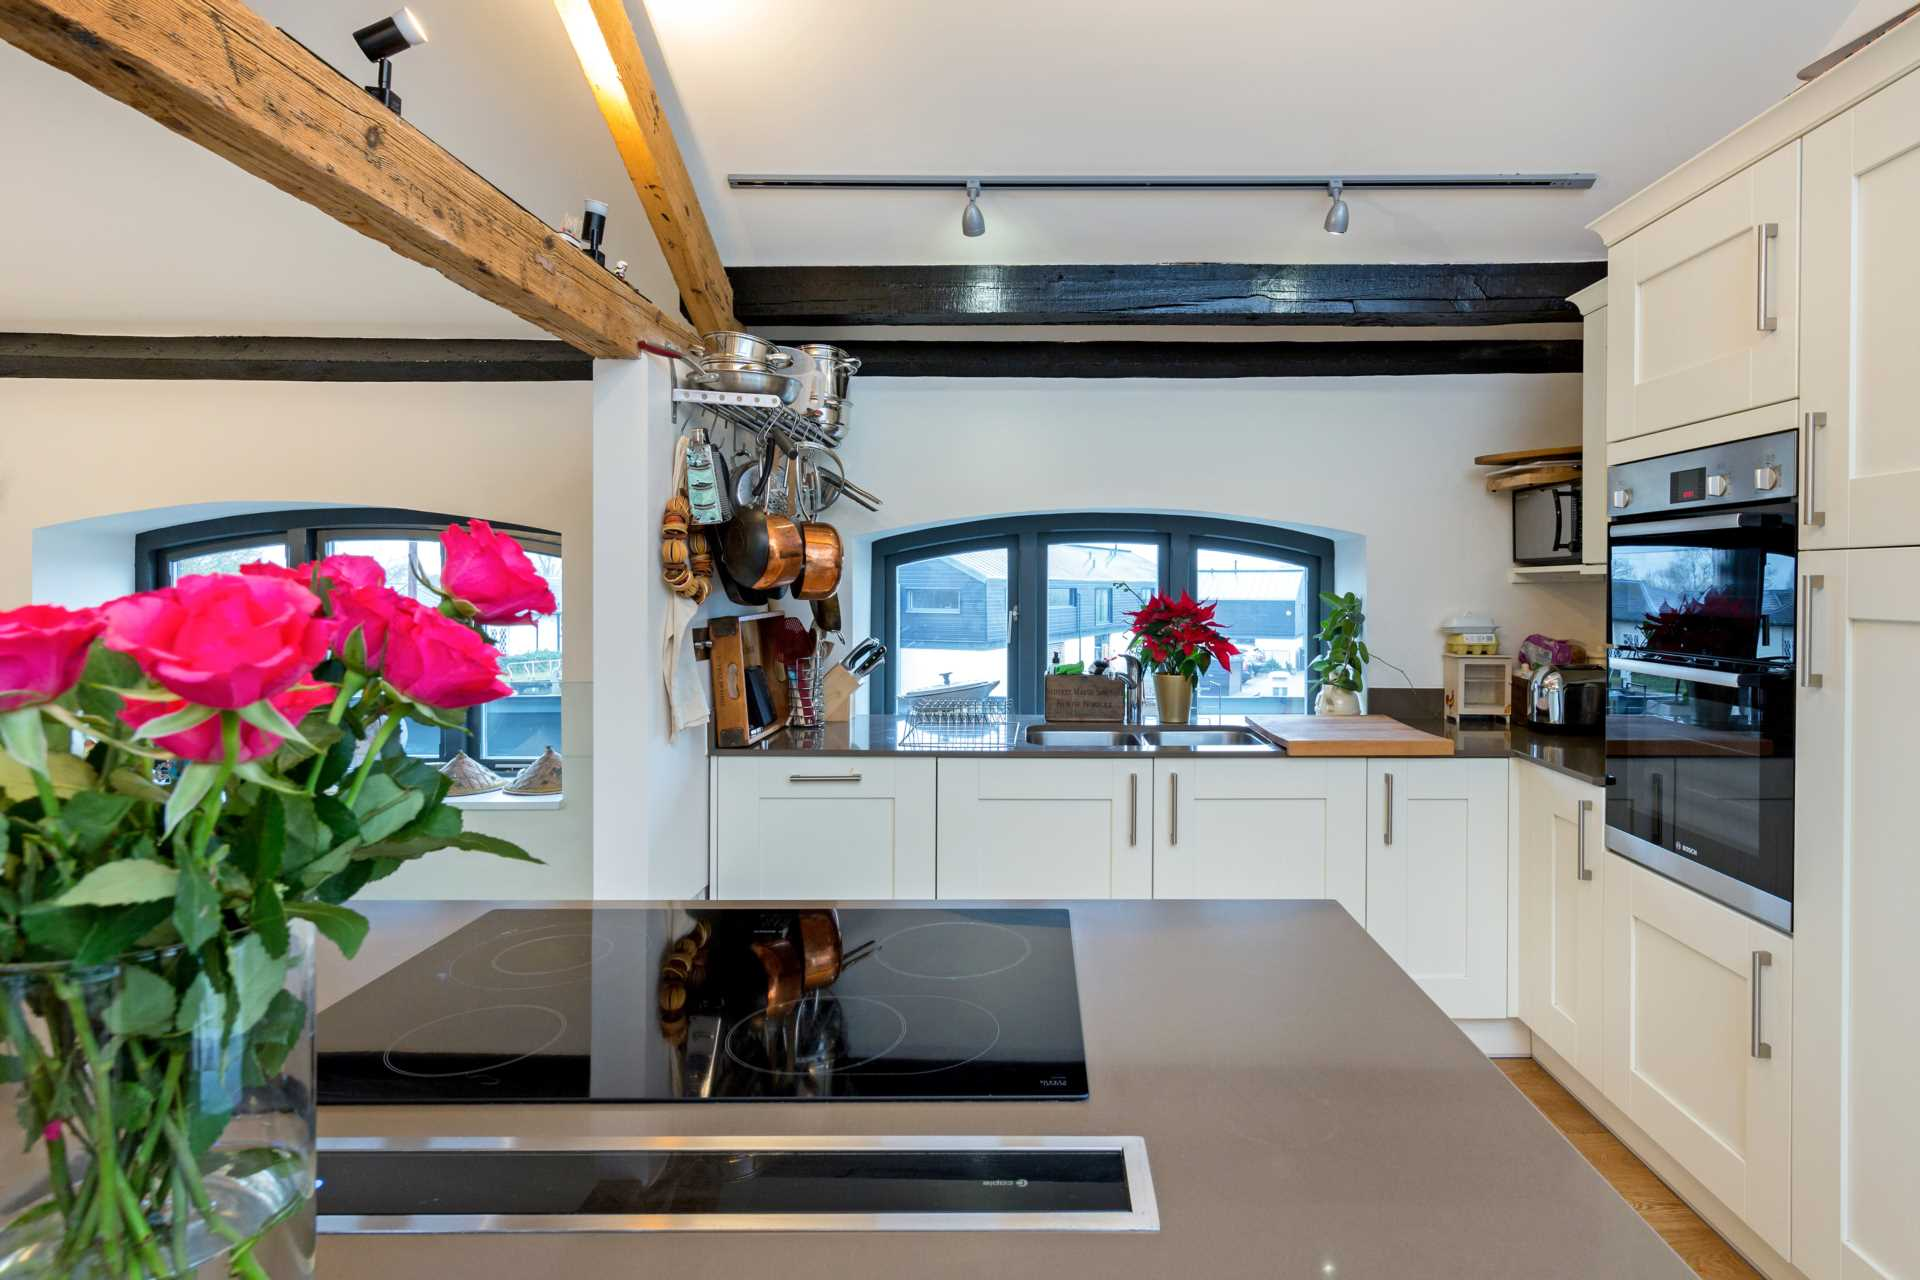 3 bedroom detached house for sale, Marsworth Wharf, Tring, HP23 4BW